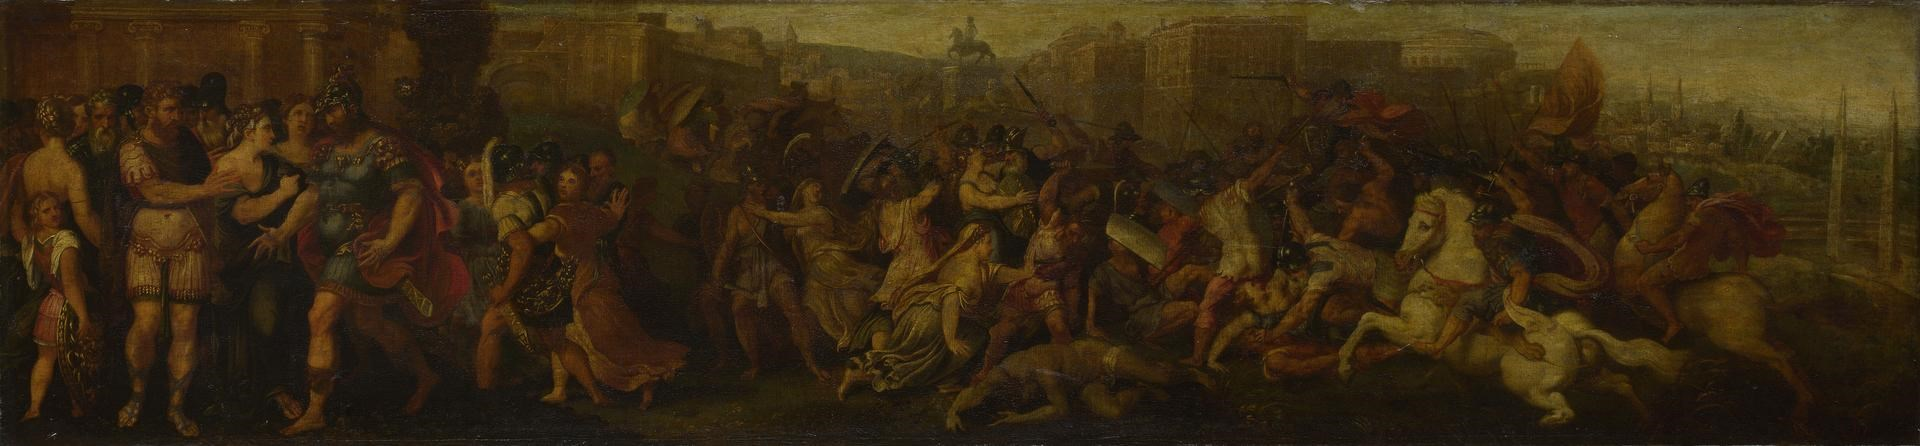 The Intervention of the Sabine Women by Giulio Licinio